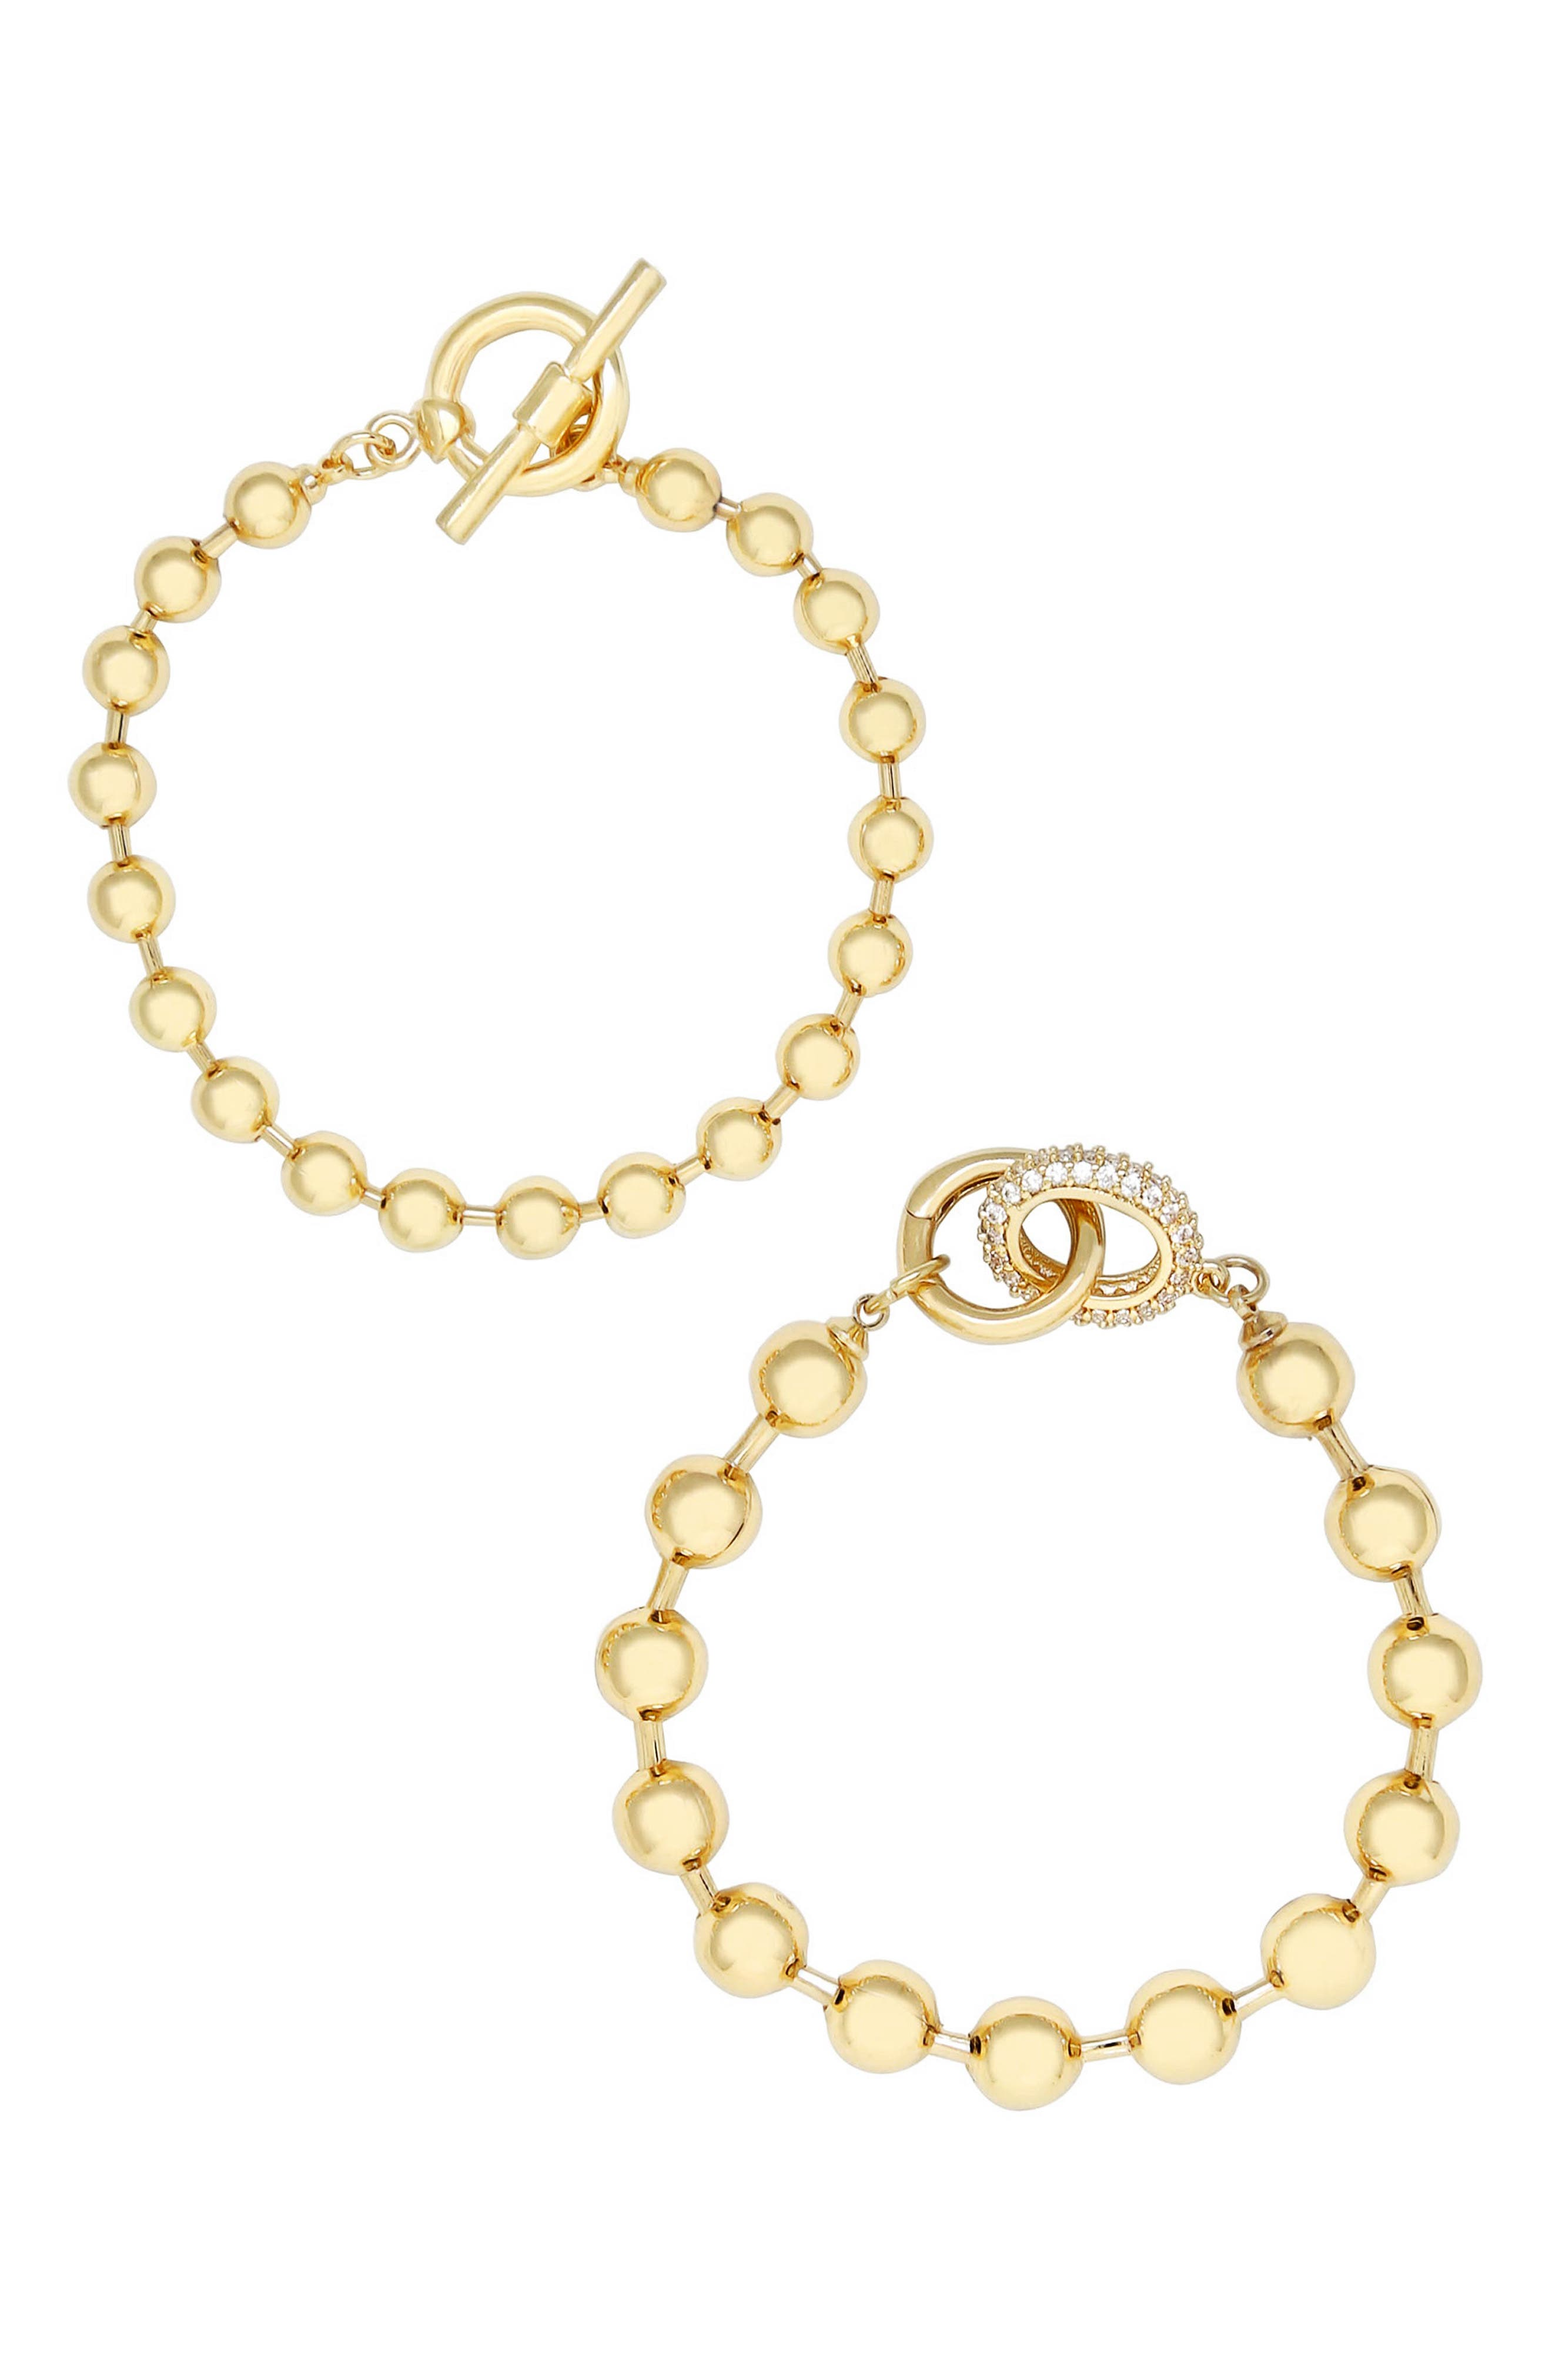 Either layered or stacked with other favorites, this set of two 18-karat gold-plated ball-chain bracelets is sure to become your new favorite. Style Name: Ettika Set Of 2 Ball Chain Bracelets. Style Number: 6176181. Available in stores.